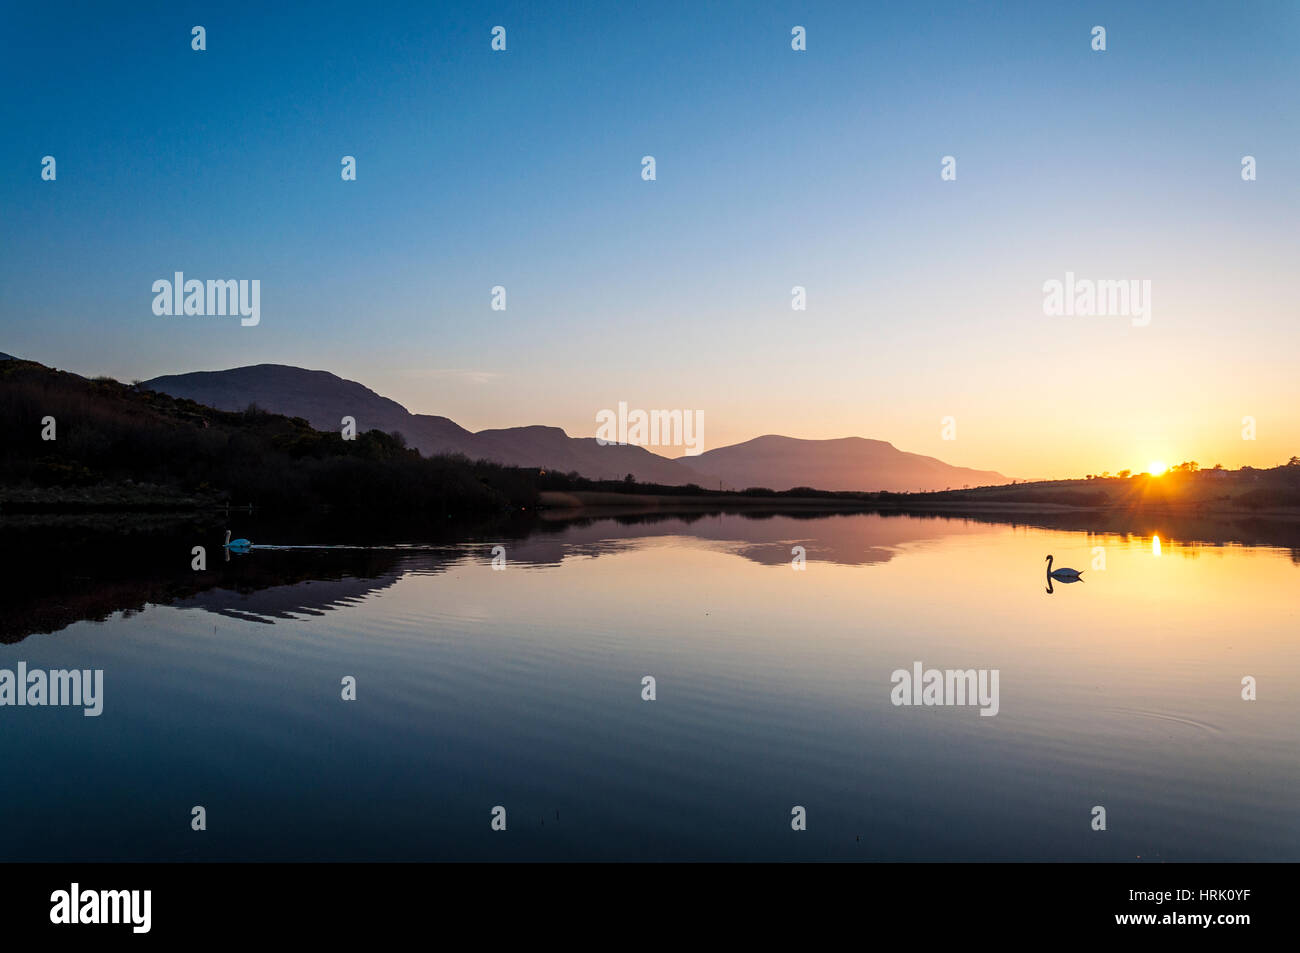 Calm still tranquil lake with swans at sunset - Stock Image